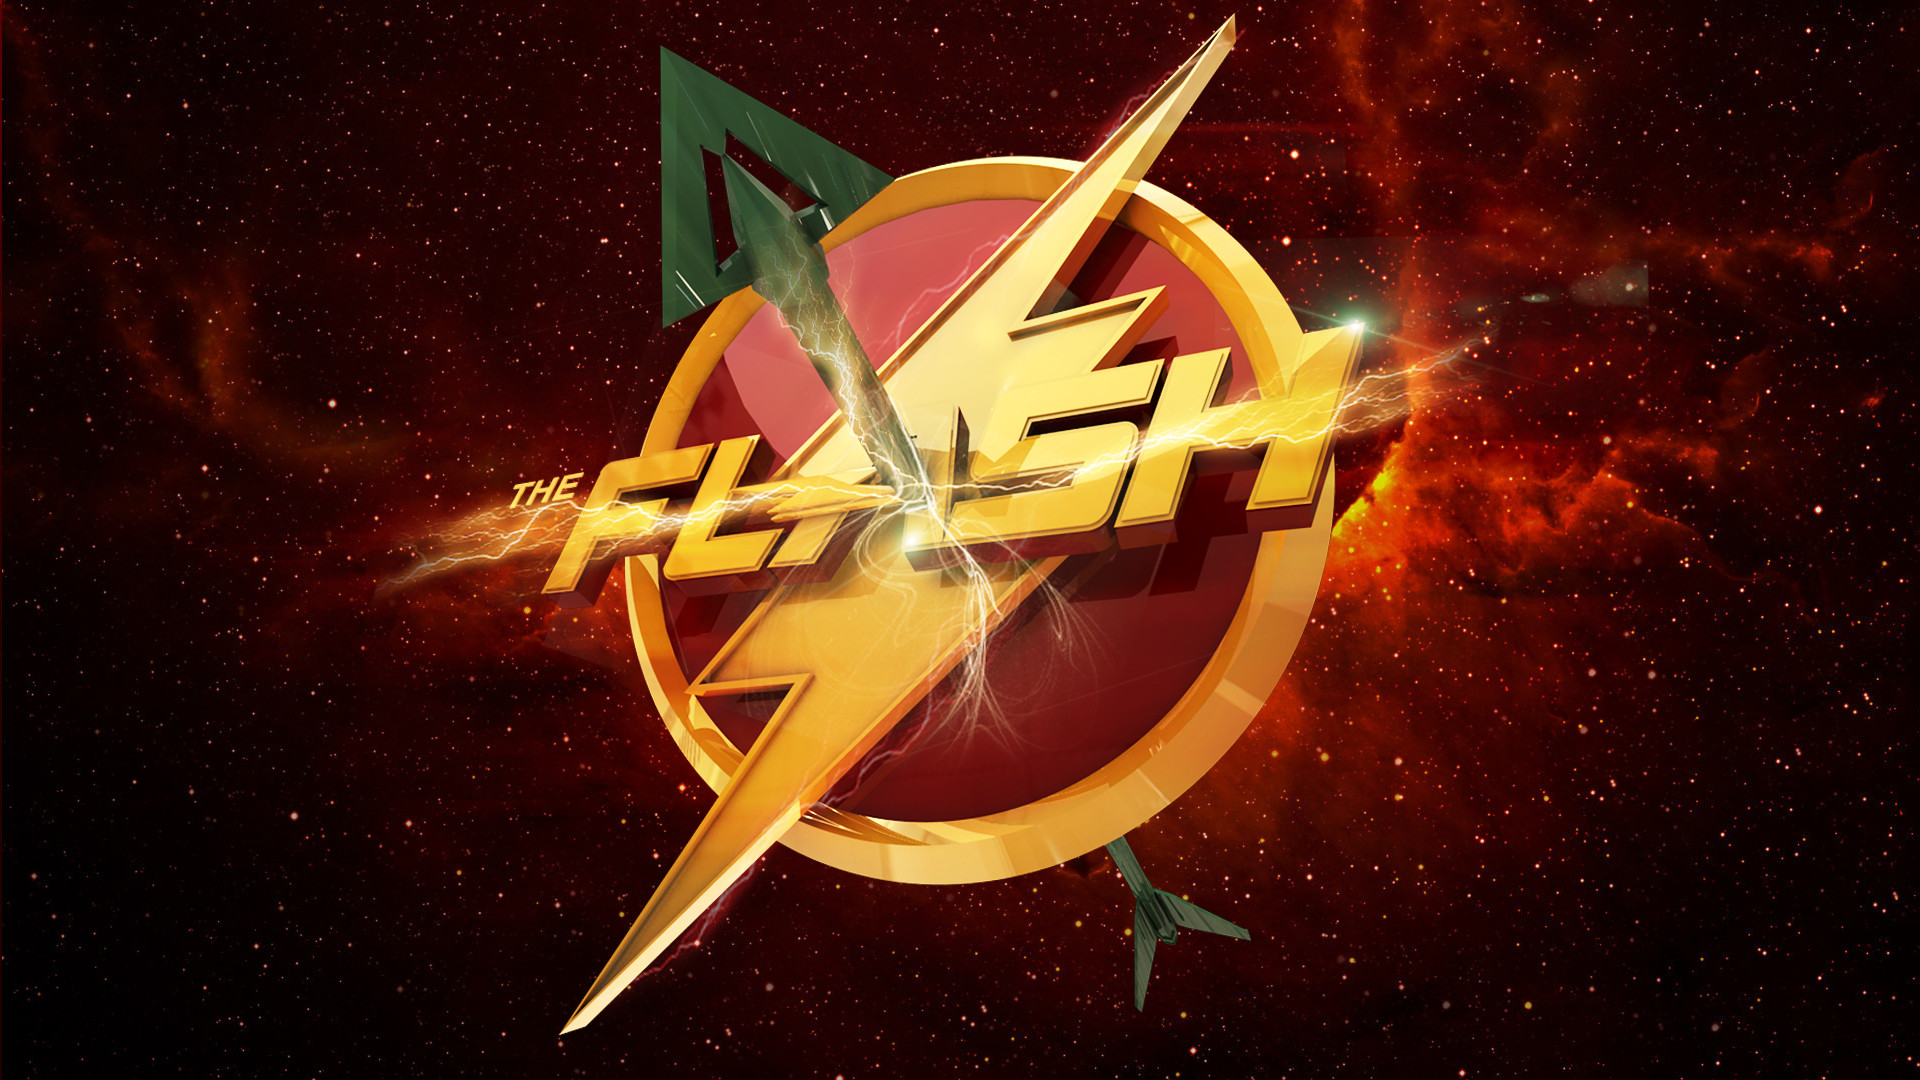 The Flash Logo Wallpaper (77+ Images